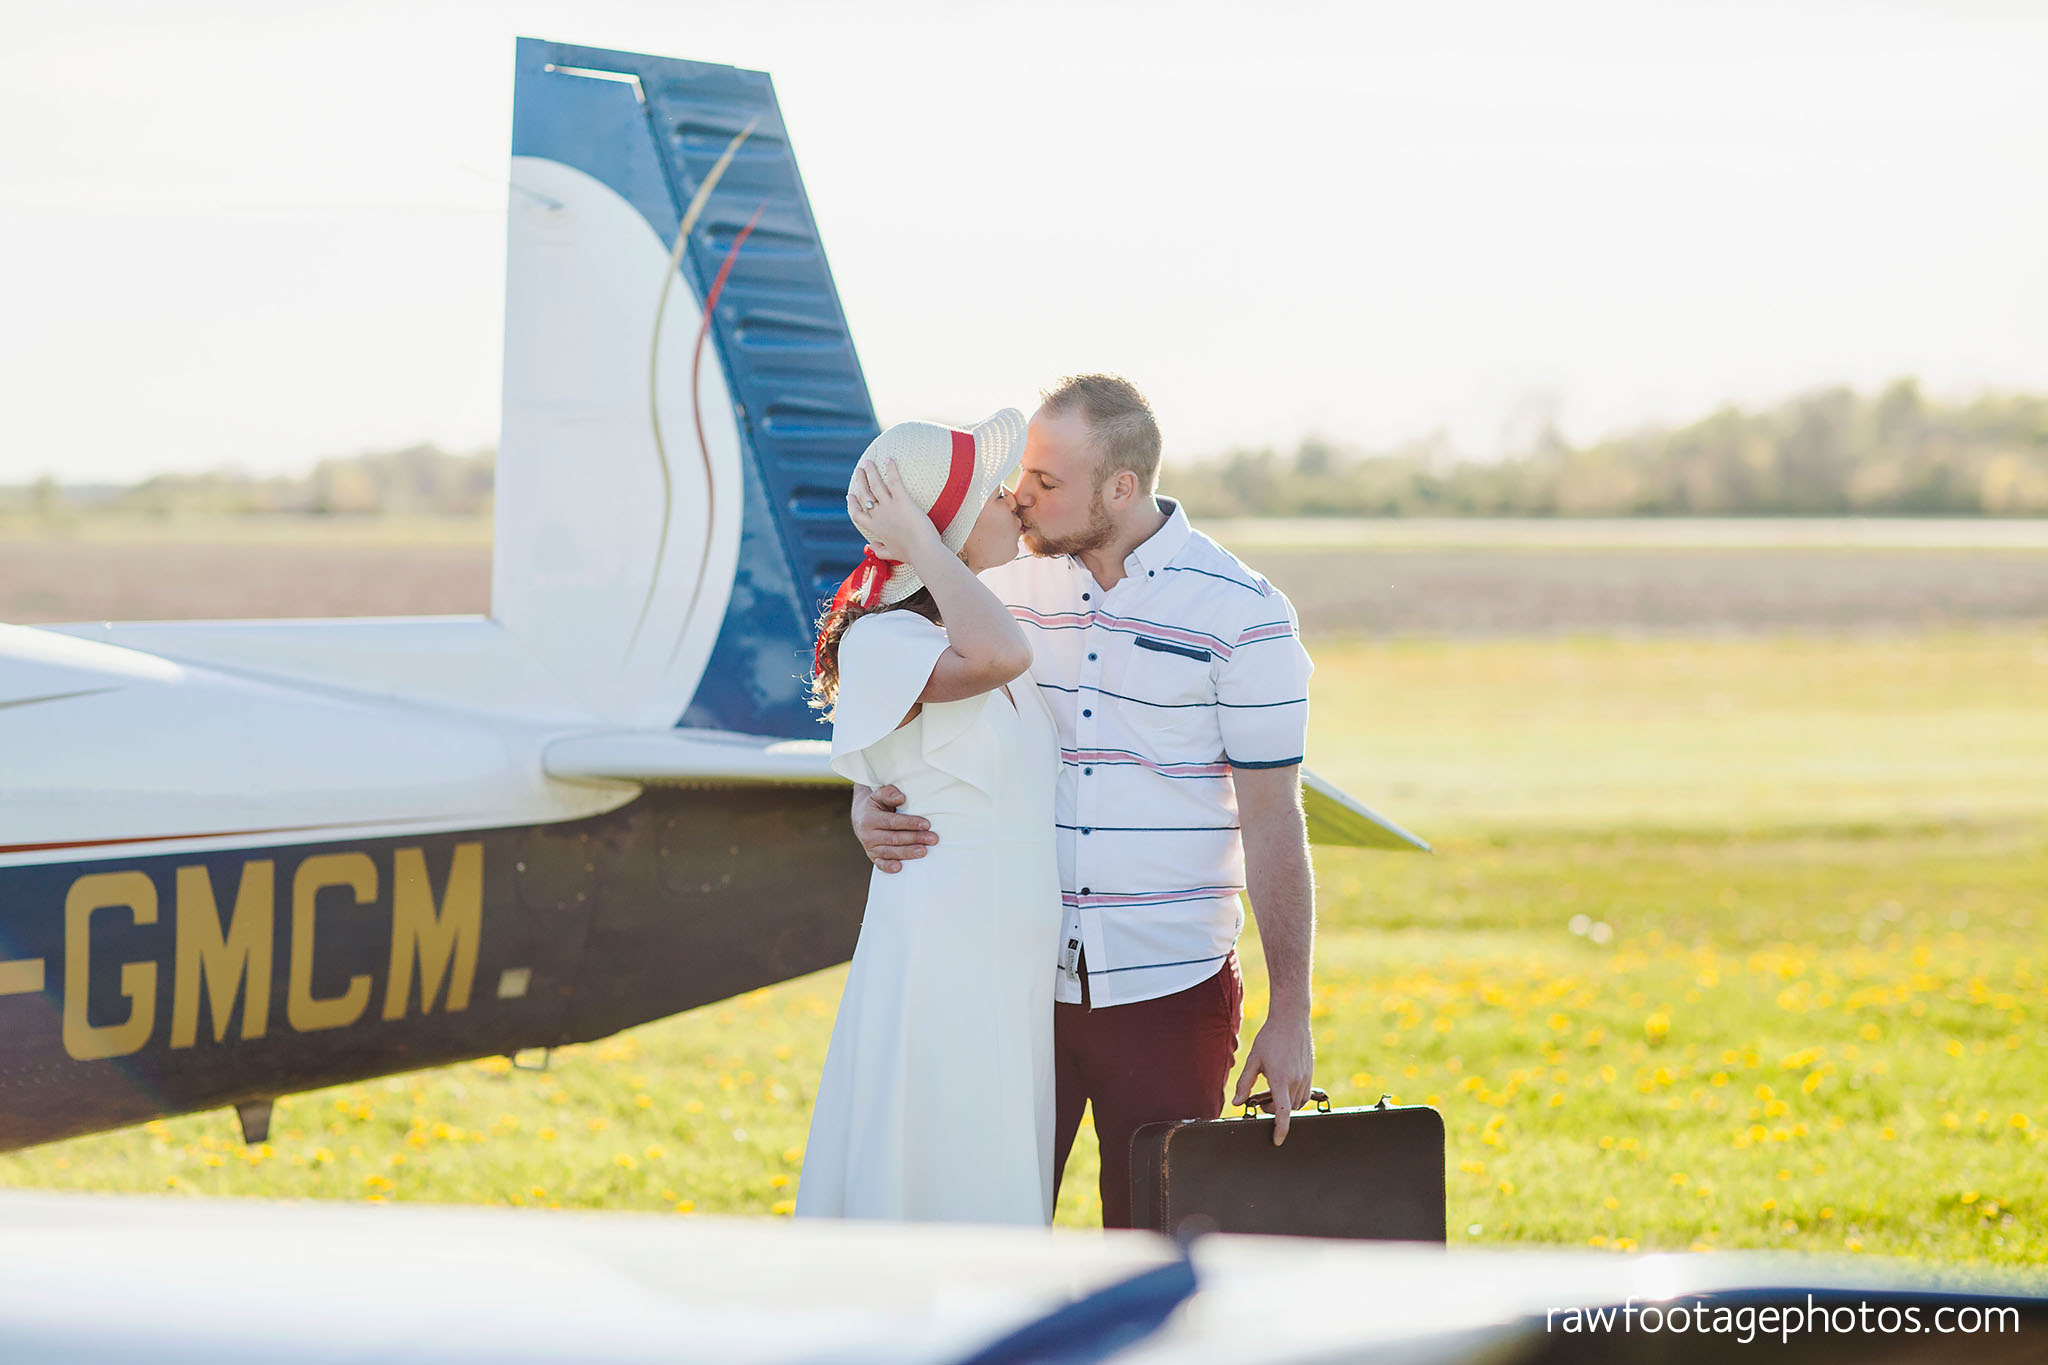 london_ontario_wedding_photographer-raw_footage_photography-engagement_session-airport_session-airplane-balloons-apple_orchard-spring_blooms-apple_blossoms010.jpg